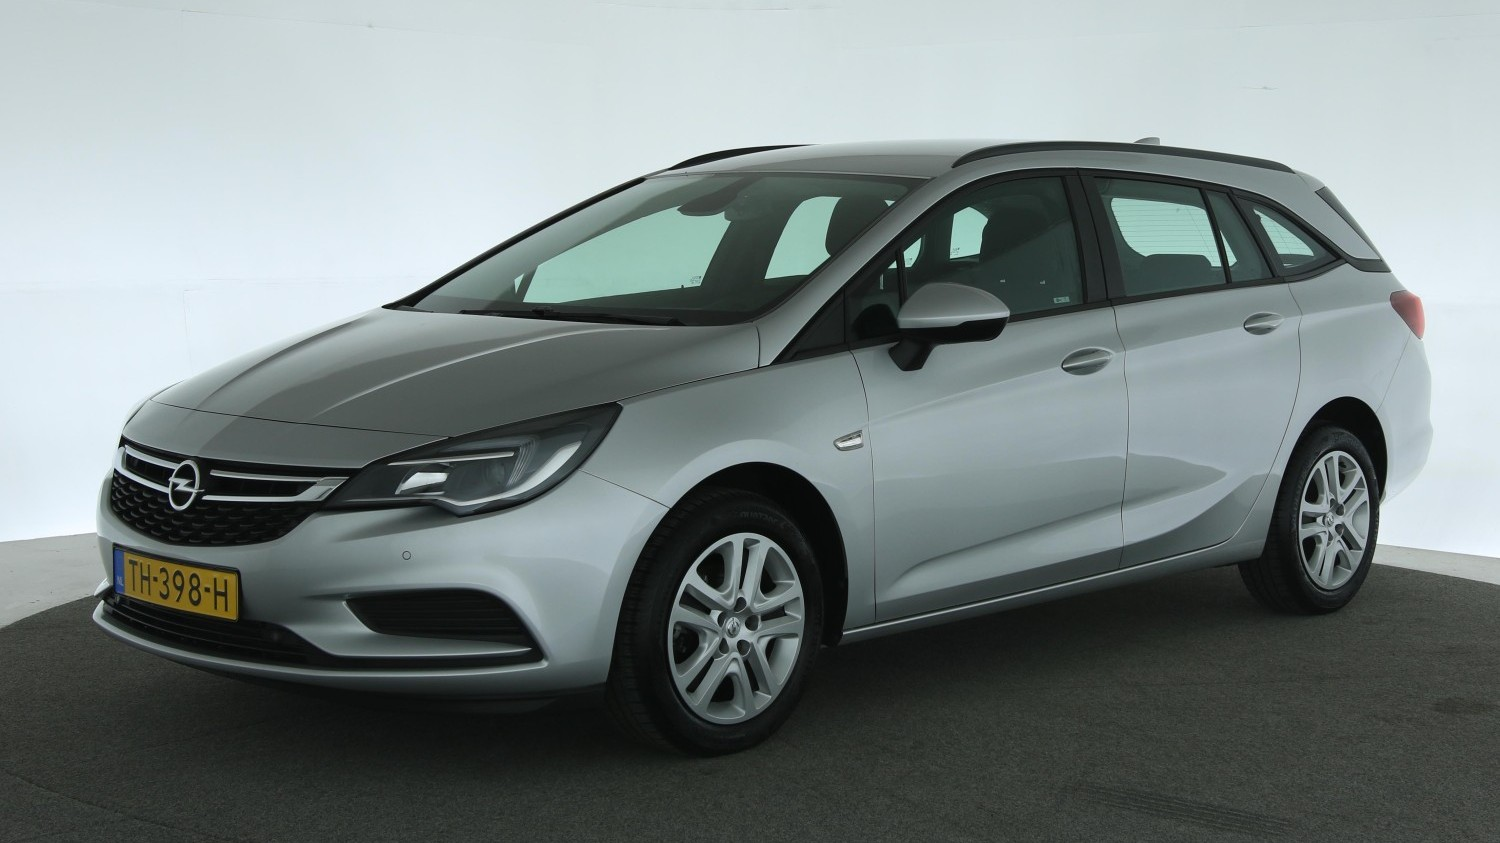 Opel Astra Station 2018 TH-398-H 1